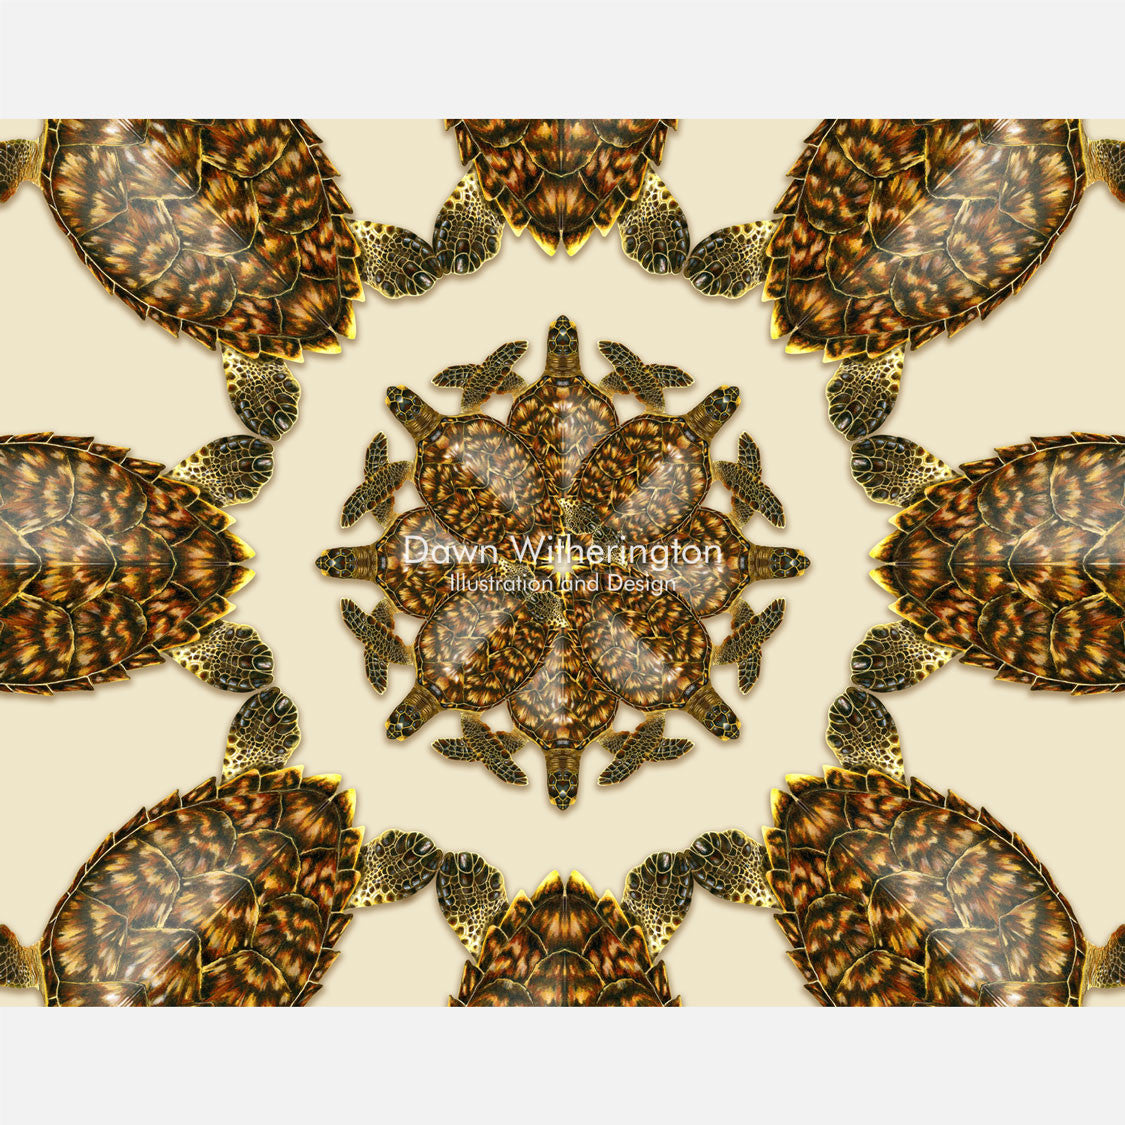 This beautiful design is of a kaleidoscopic graphic of hawksbill sea turtles, Eretmochelys imbricata.